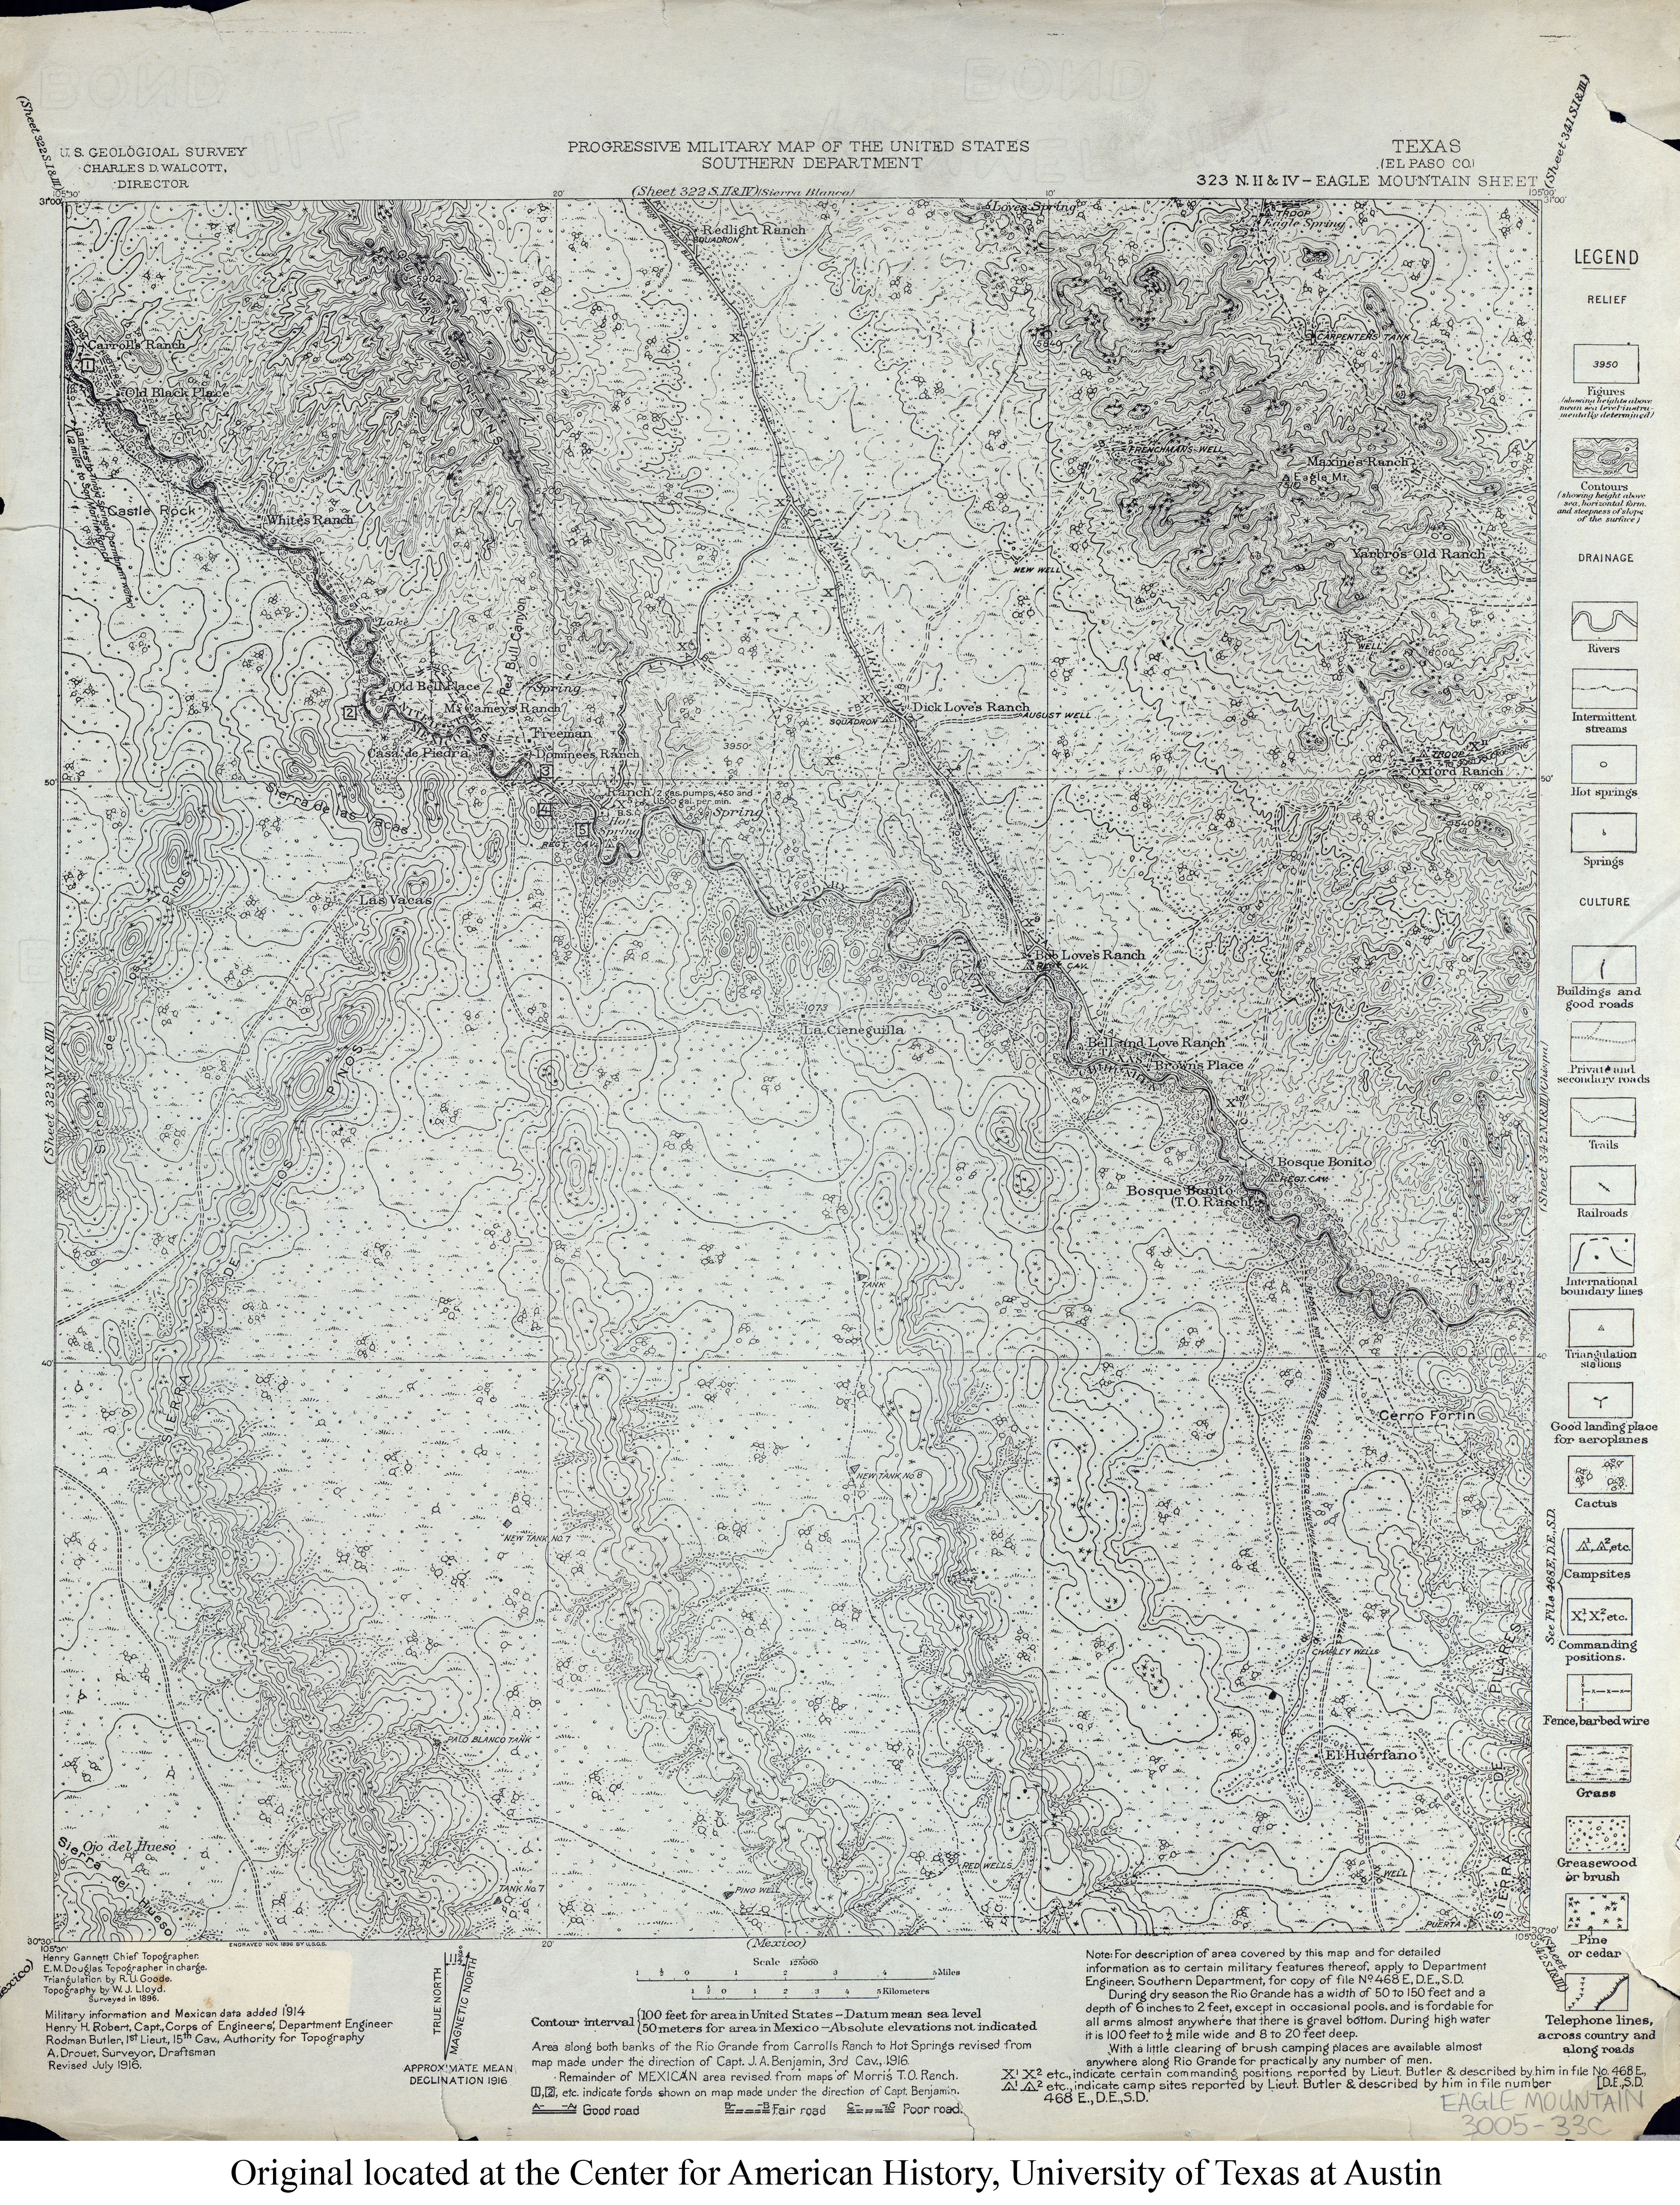 Texas Topographic Maps - Perry-Castañeda Map Collection - UT ... on map of nolan county, map of young county, map of ft bliss, map of culiacan, map of cancún, map of wilkes-barre, map of houston, map of colonial heights, map of tampa st petersburg, map of santa teresa, map of rio rico, map of corbin, map of liberal, map of austin, map of ft stockton, map of indiana in, map of eastern id, map of beebe, map of hamtramck, map arizona,